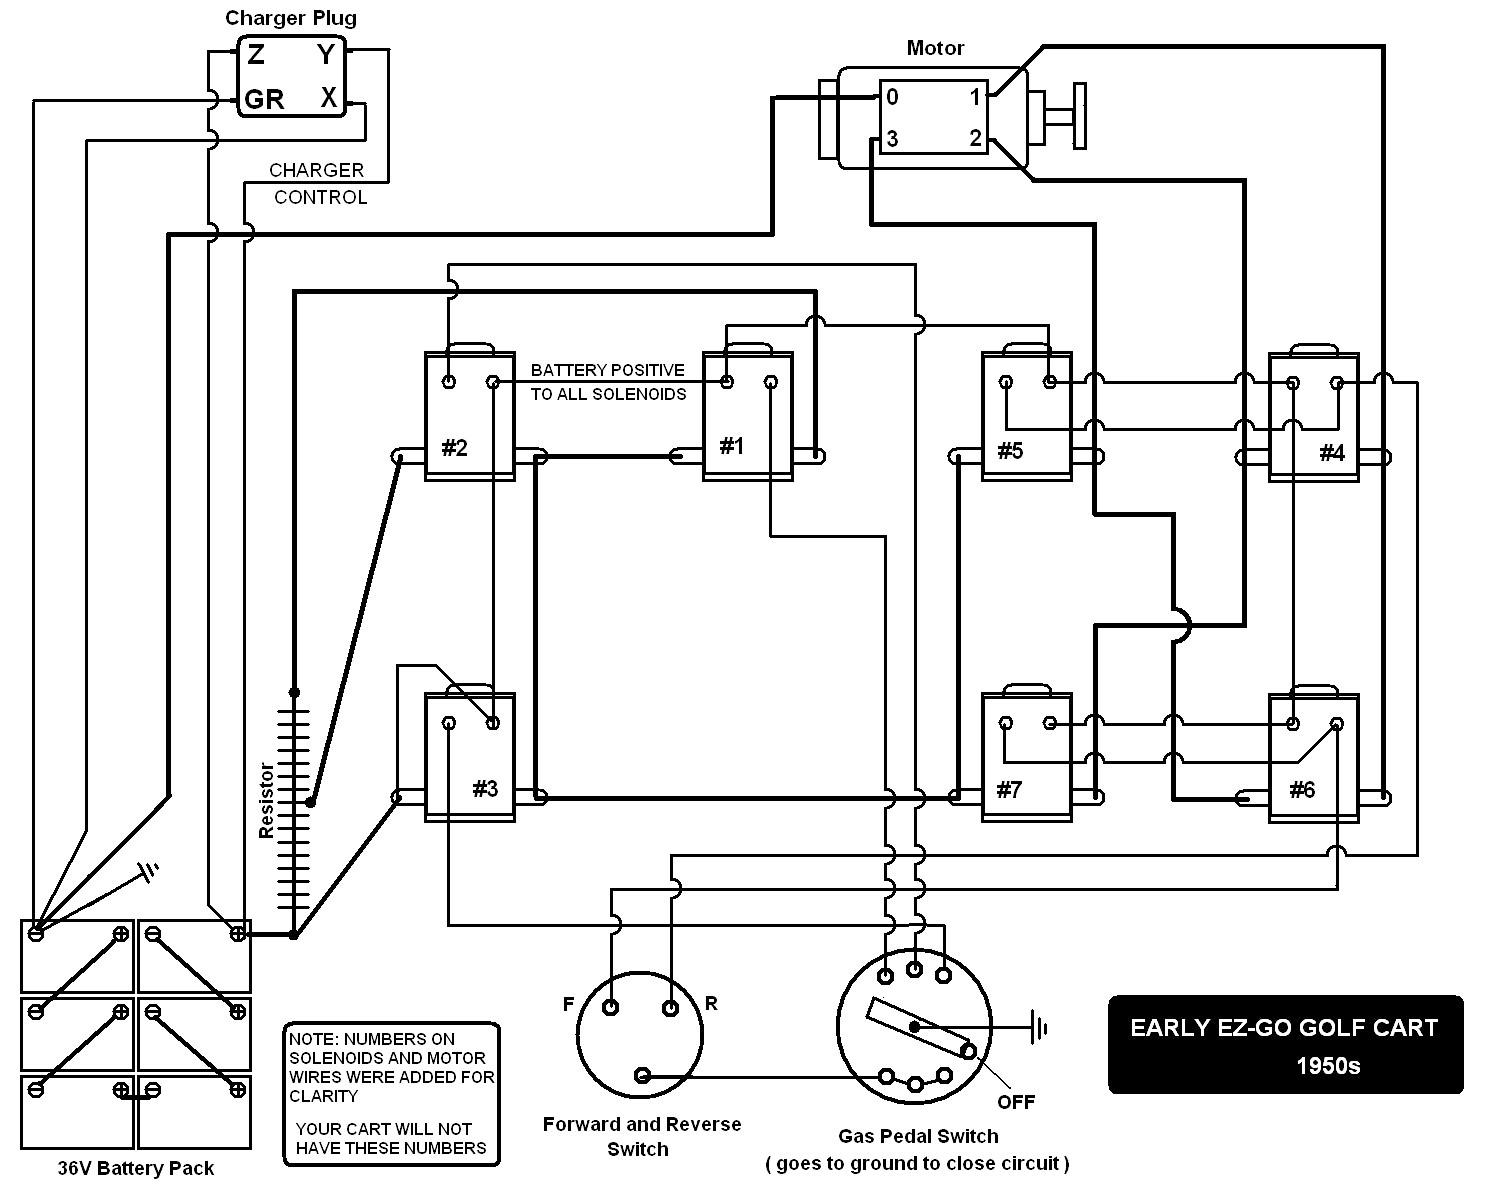 Yamaha G Wiring Diagram Electric on yamaha g1 seats, yamaha g1 battery, yamaha g16 starter wiring, yamaha g1 radio, yamaha golf cart solenoid wiring, yamaha g1 body, yamaha g1 tools, yamaha g1 troubleshooting, yamaha g1 shock absorber, yamaha g1 fuel tank, yamaha gas golf cart wiring schematics, yamaha g1 frame, yamaha g1 manual, yamaha g1 starter, yamaha g1 accessories, yamaha g1 carburetor, yamaha g1 operation, yamaha g1 fuel system, ezgo txt wiring diagram, golf cart wiring diagram,